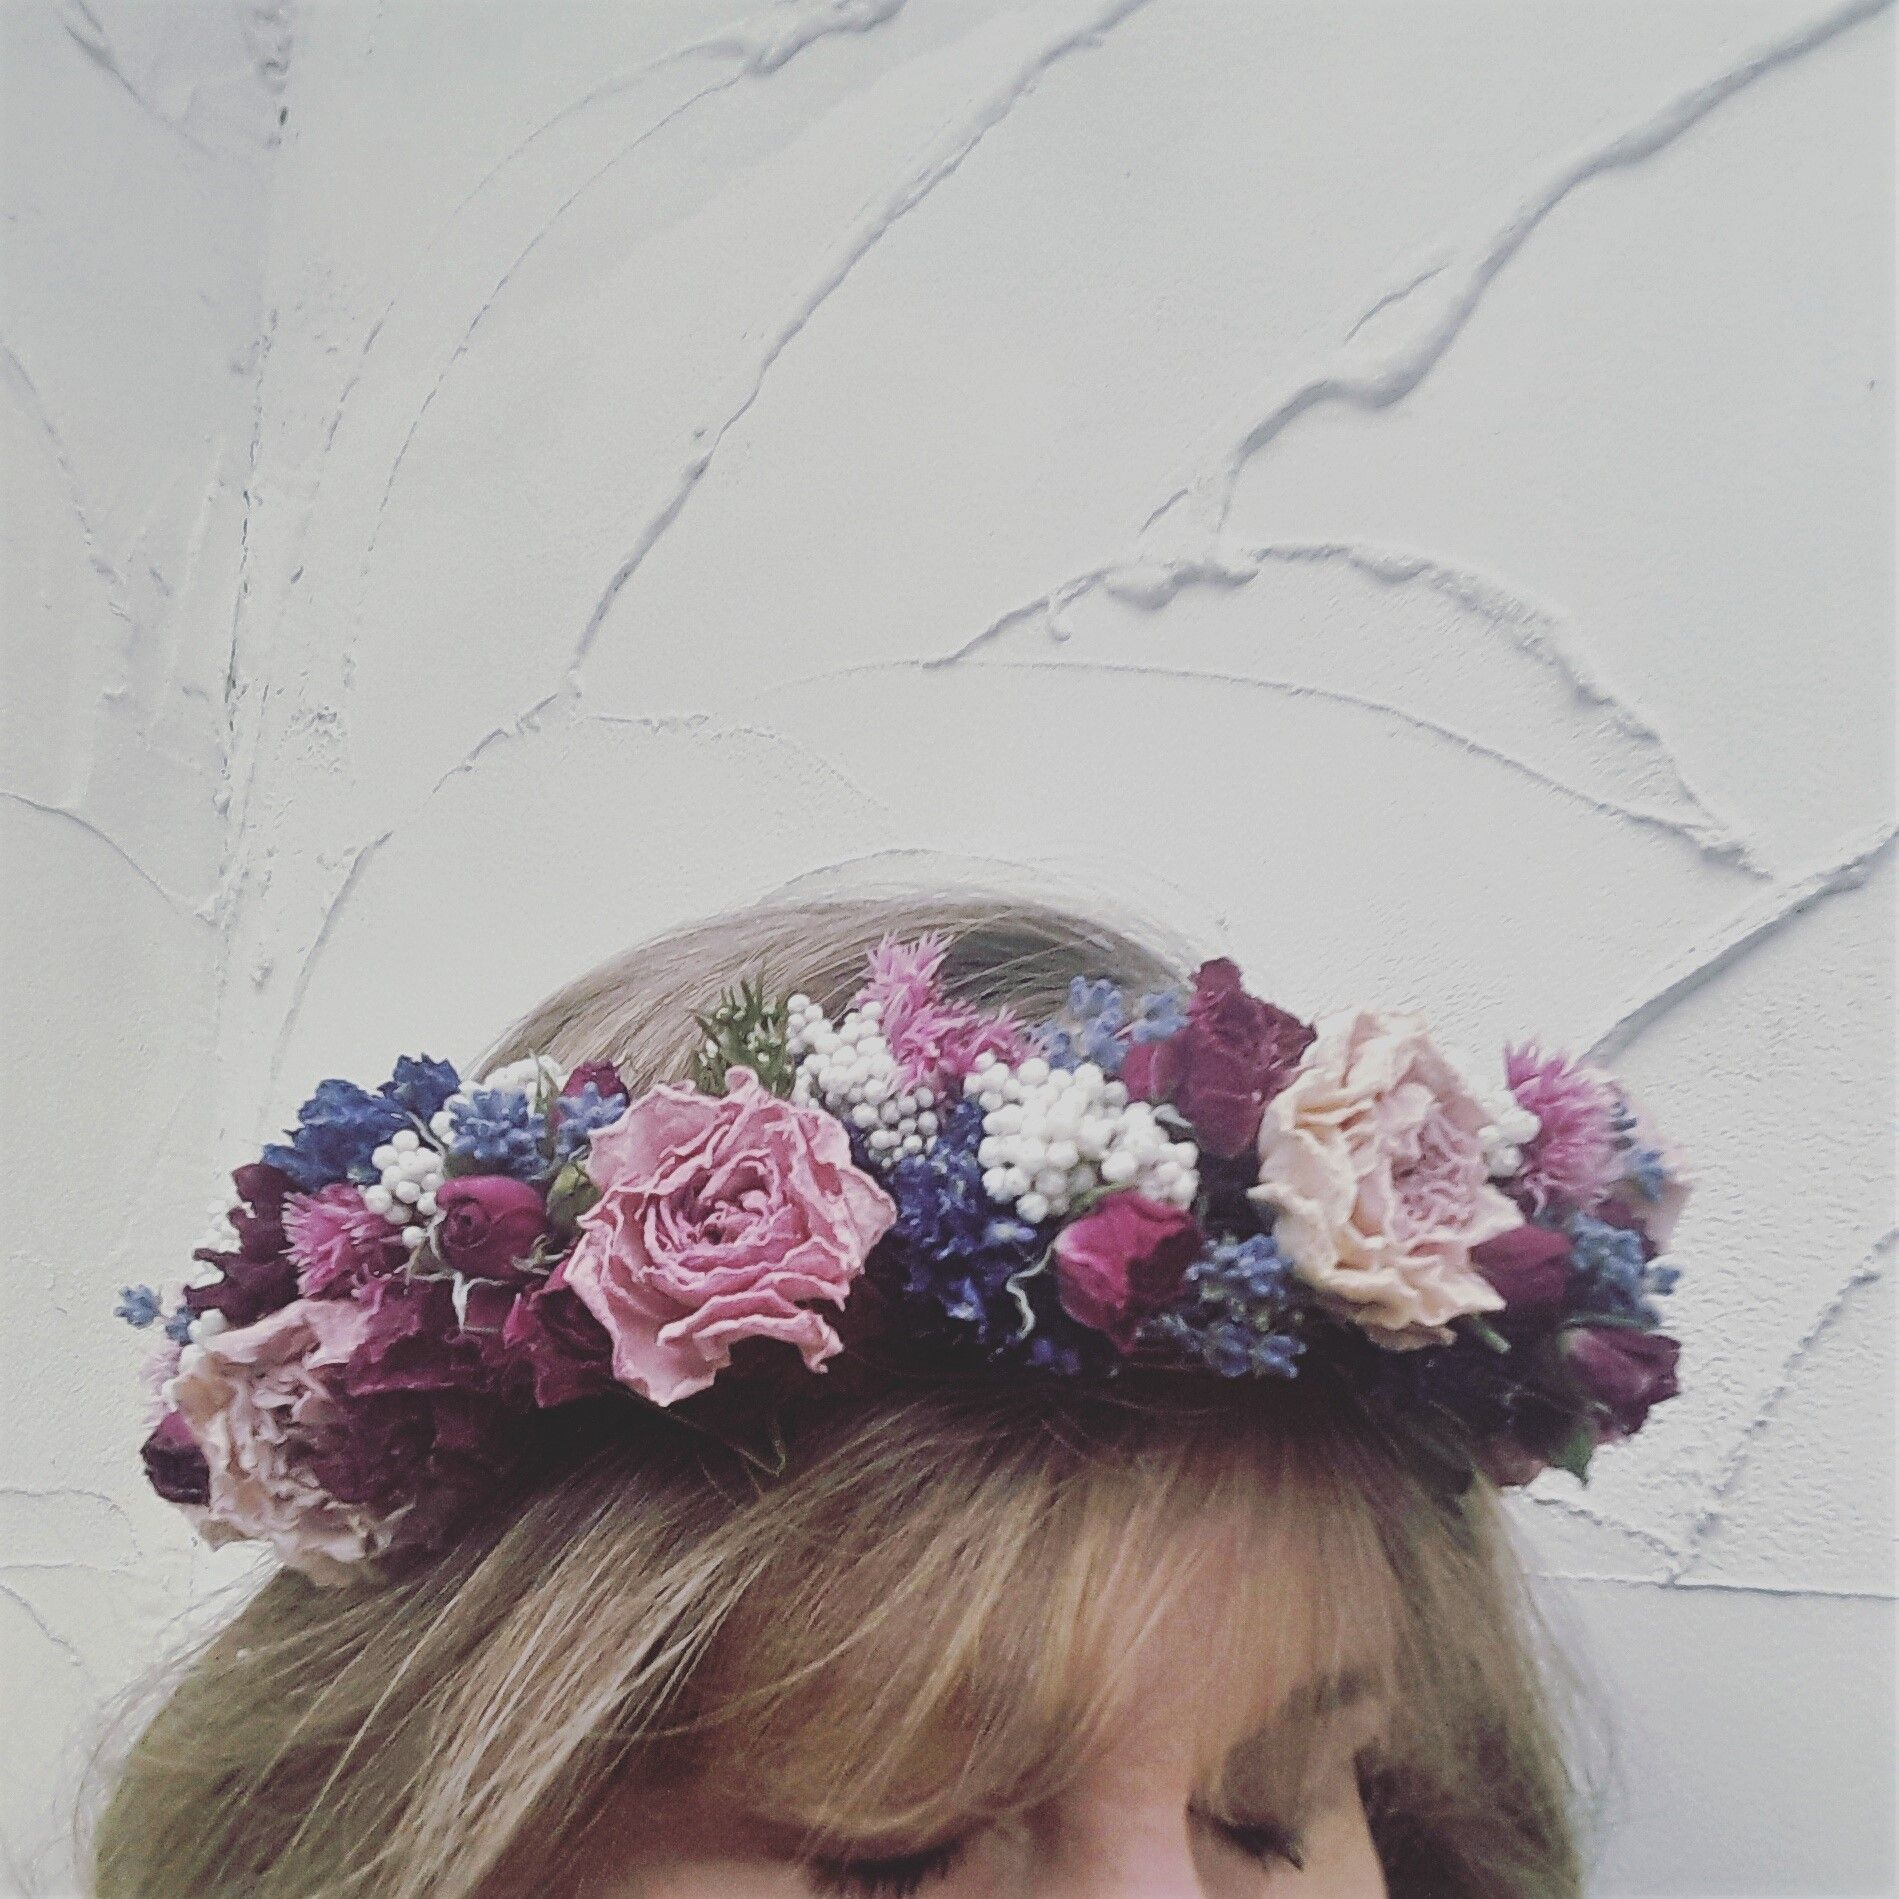 Dried Floral Flowercrown Wedding Flowers Flowers Dried Floral